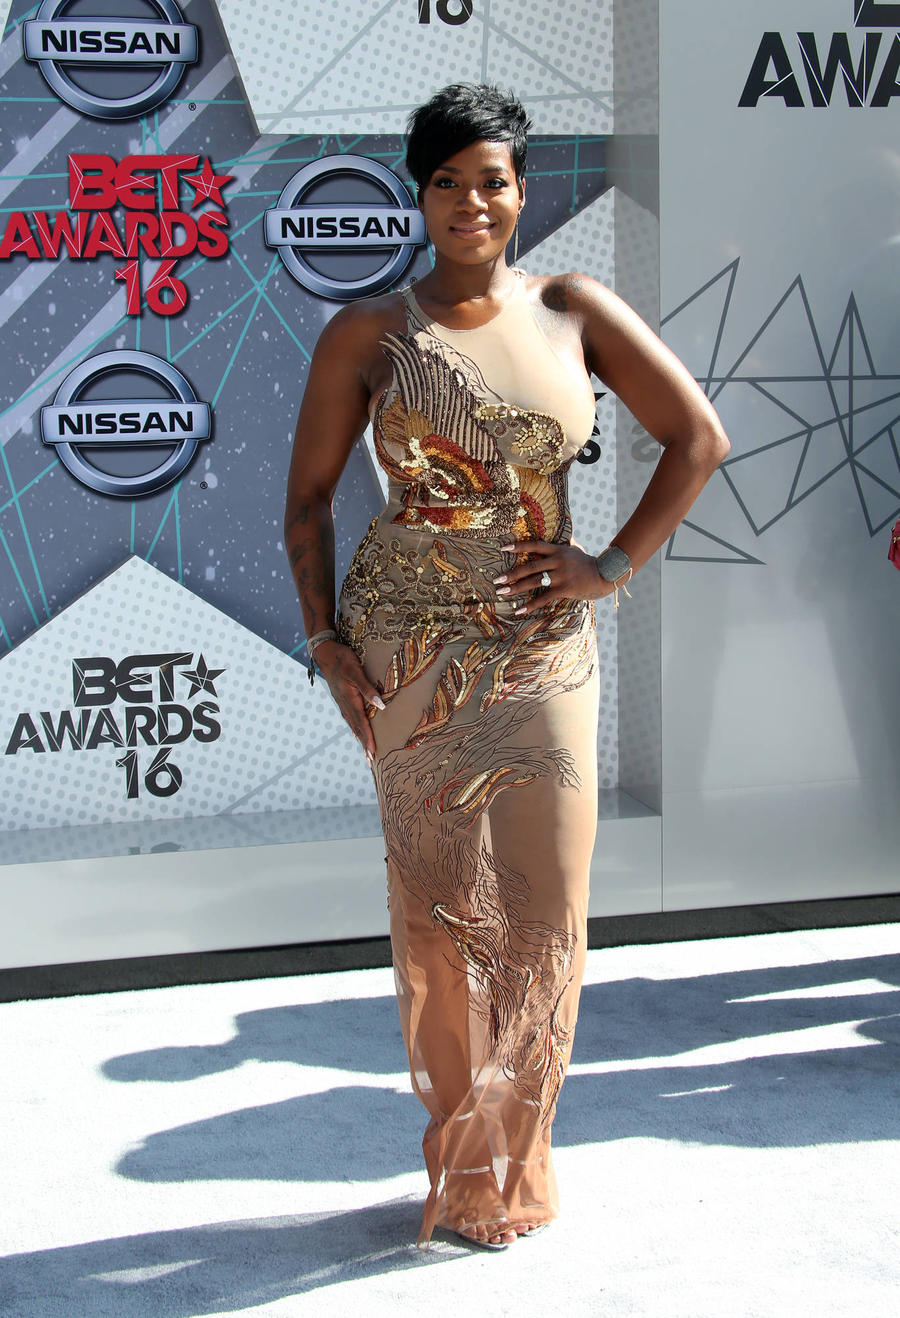 Fantasia Barrino Returning To The Stage Following Burn Injury